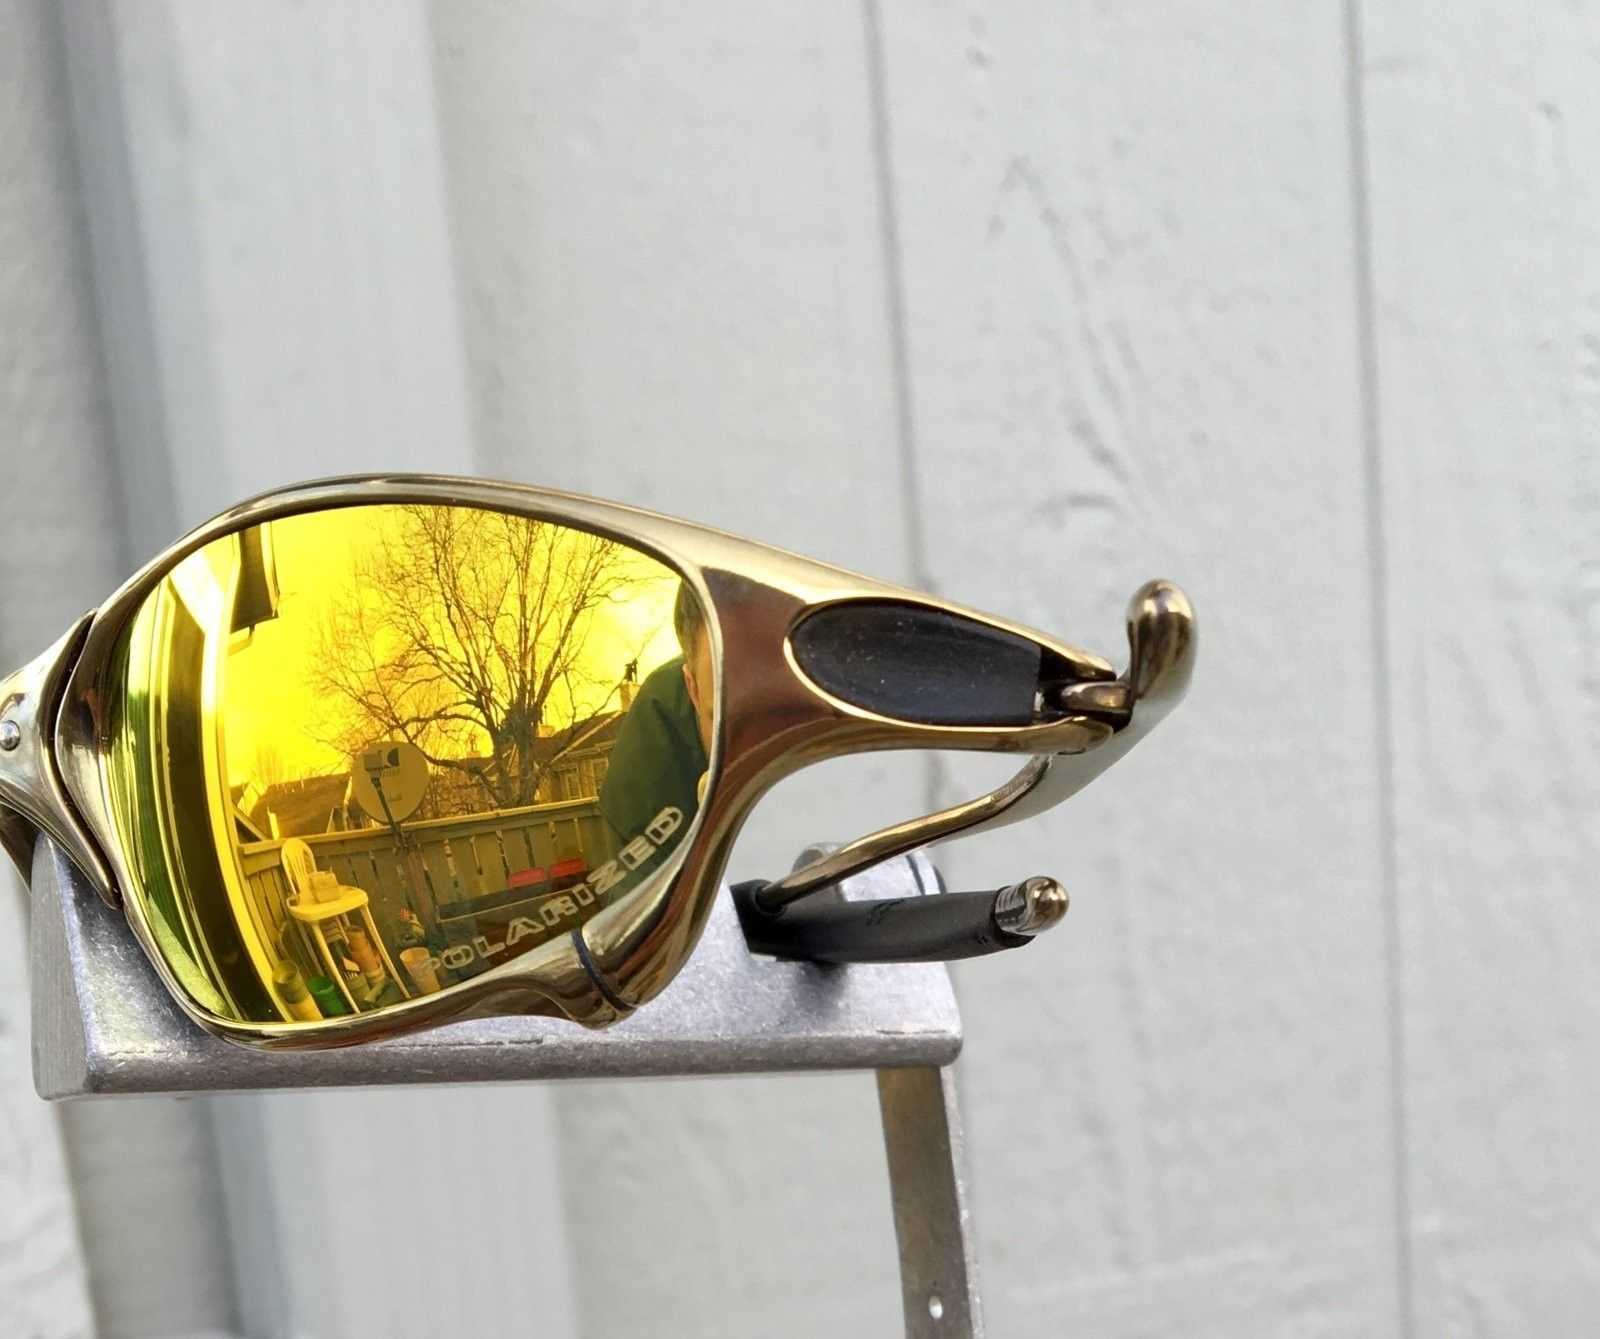 Juliets anodized gold done by zwc0442 - image.jpeg